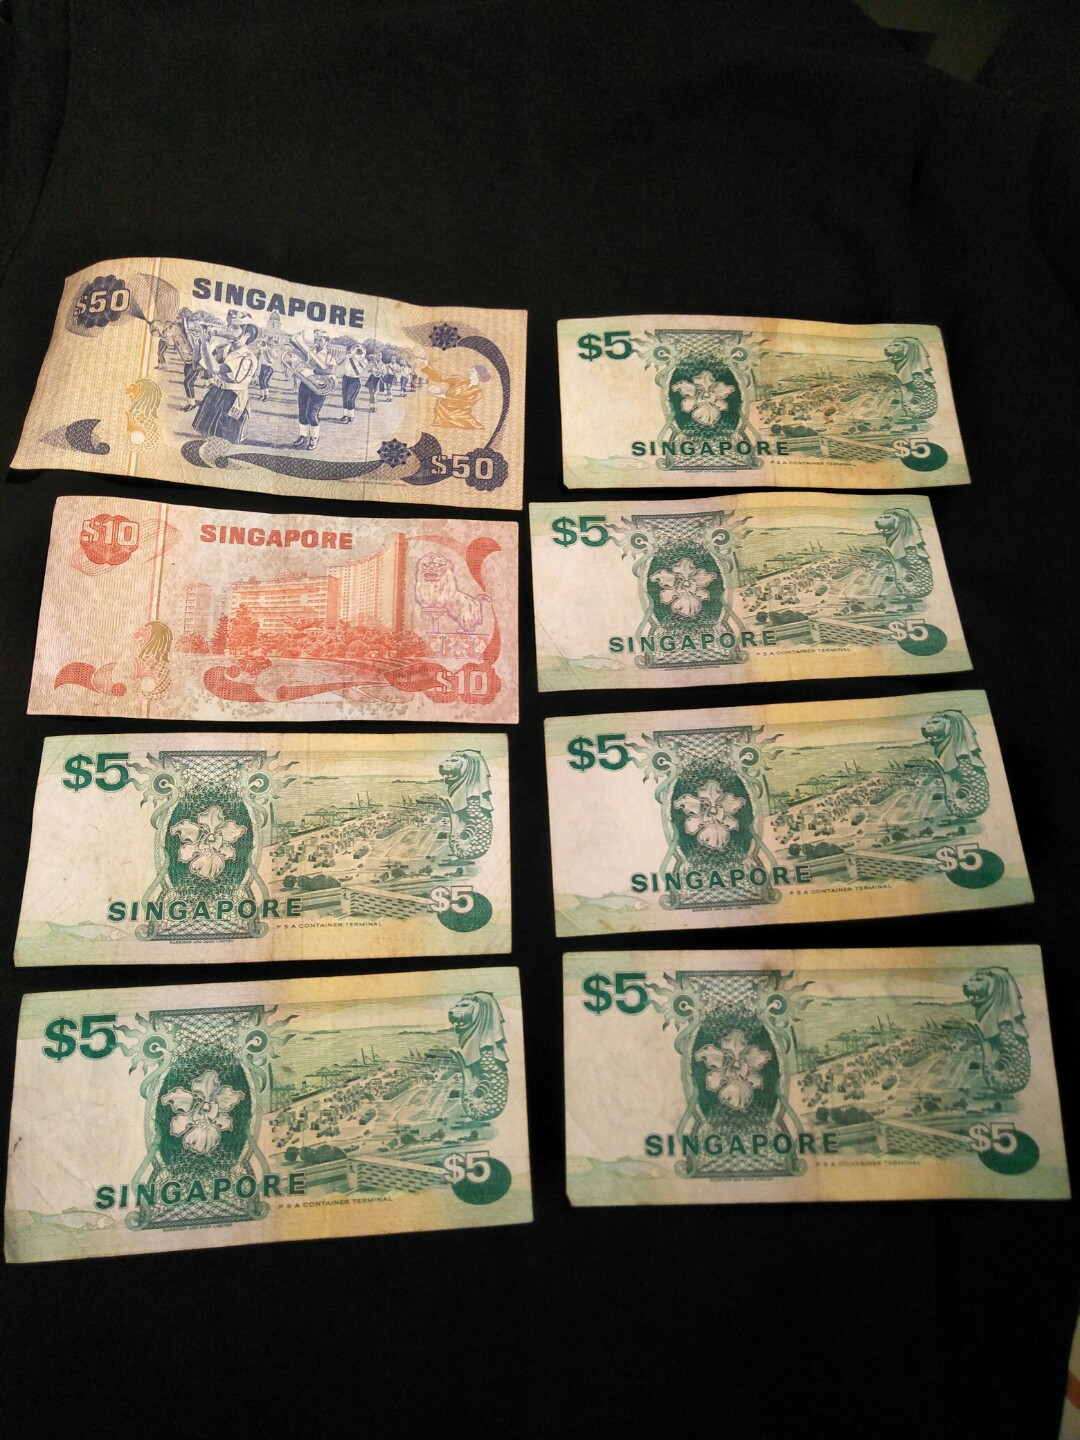 17 of sg old notes face value $103 now offer $108